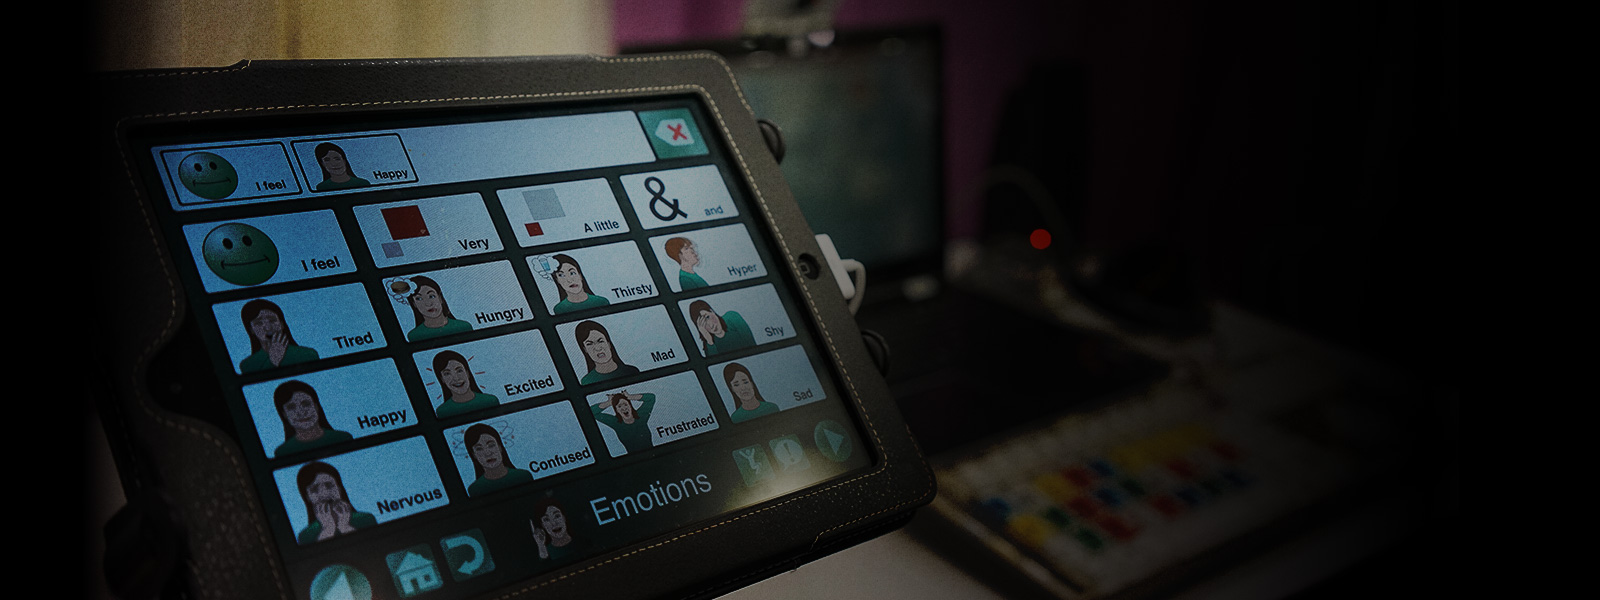 Photo of a tablet with speech software installed.